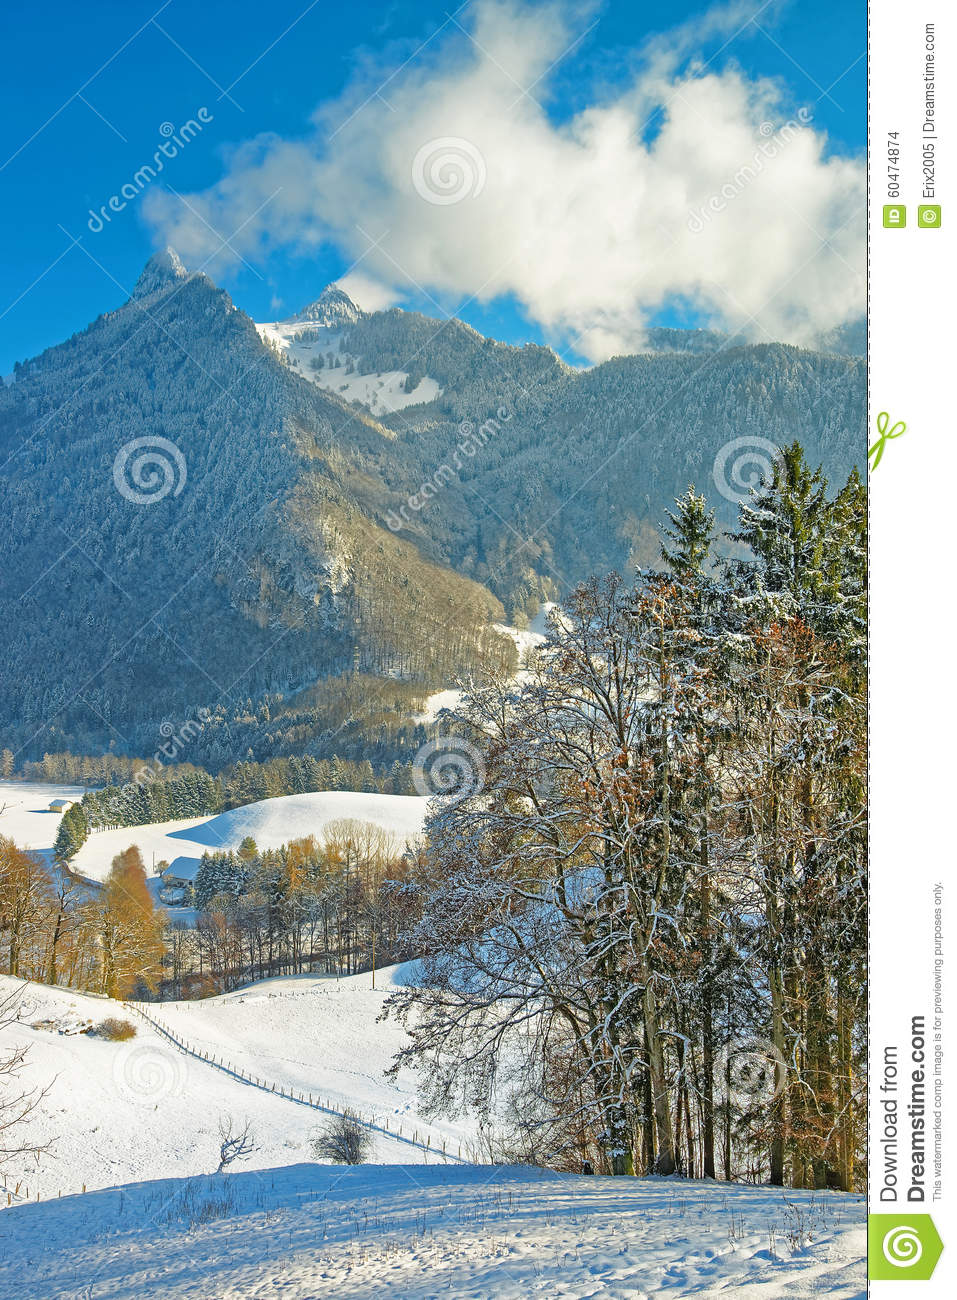 Winter Snow Mountain Landscape Stock Photo - Image: 60474874